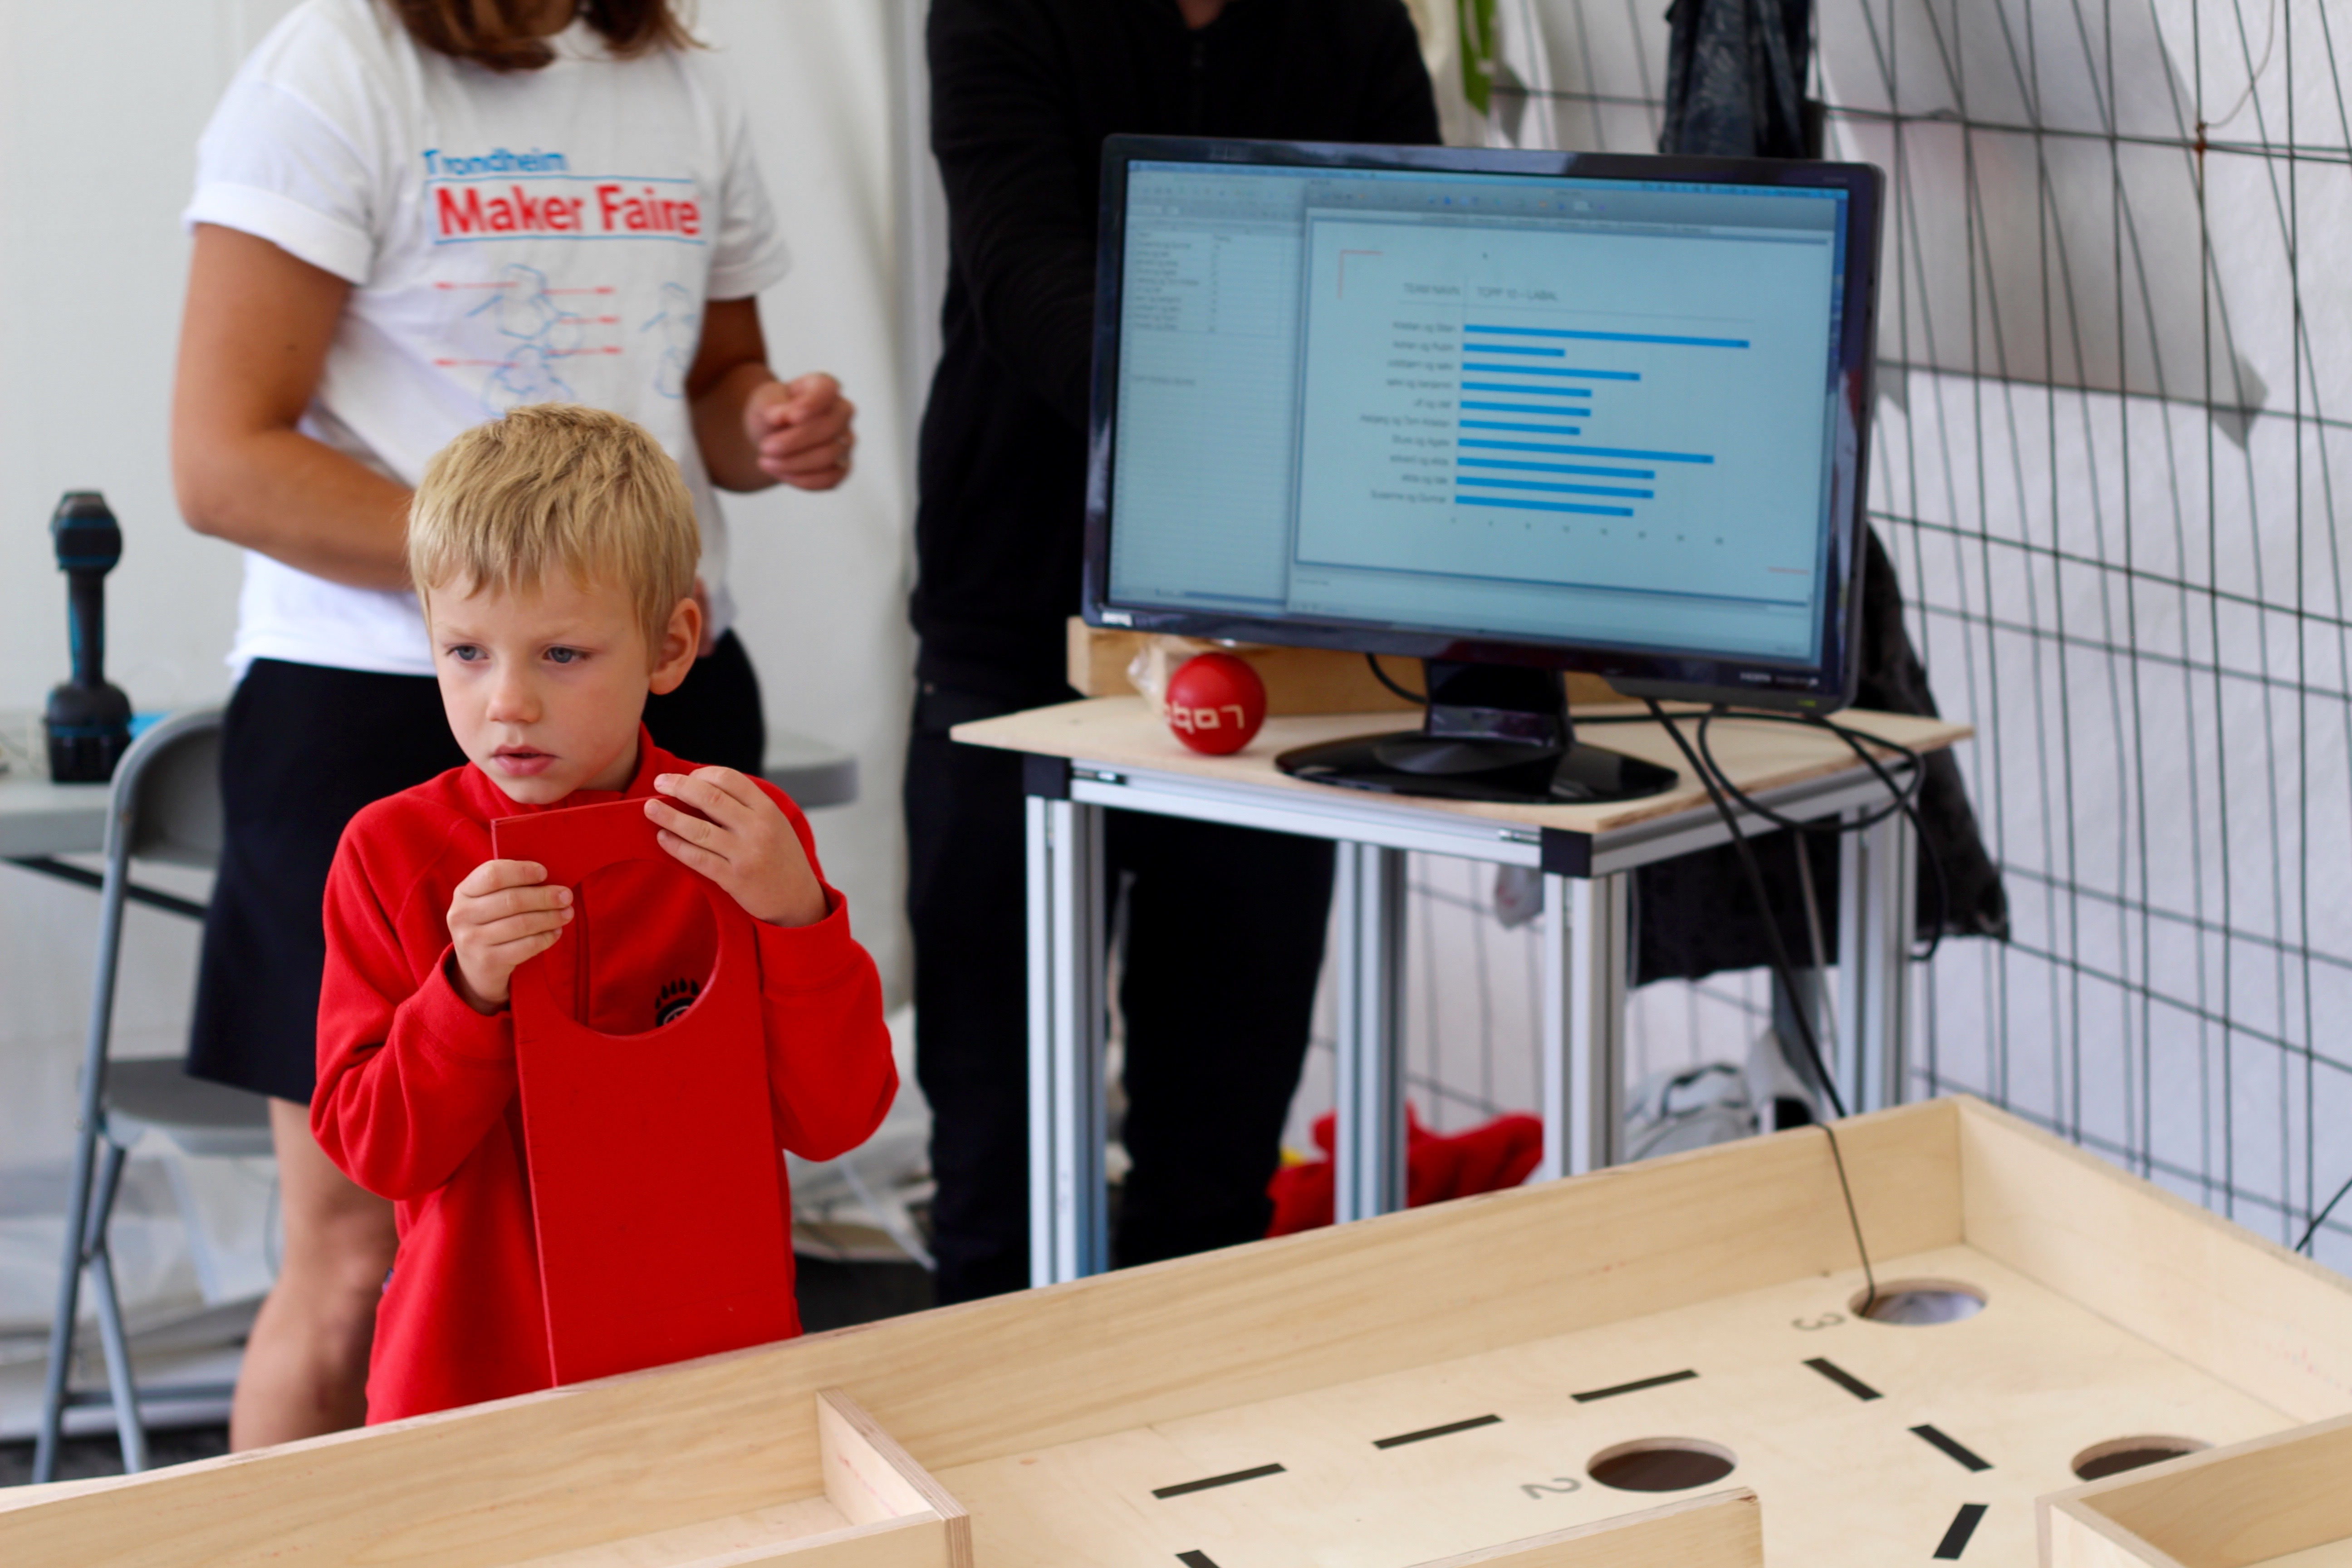 The Labyrinth Game at Trondheim Maker Faire